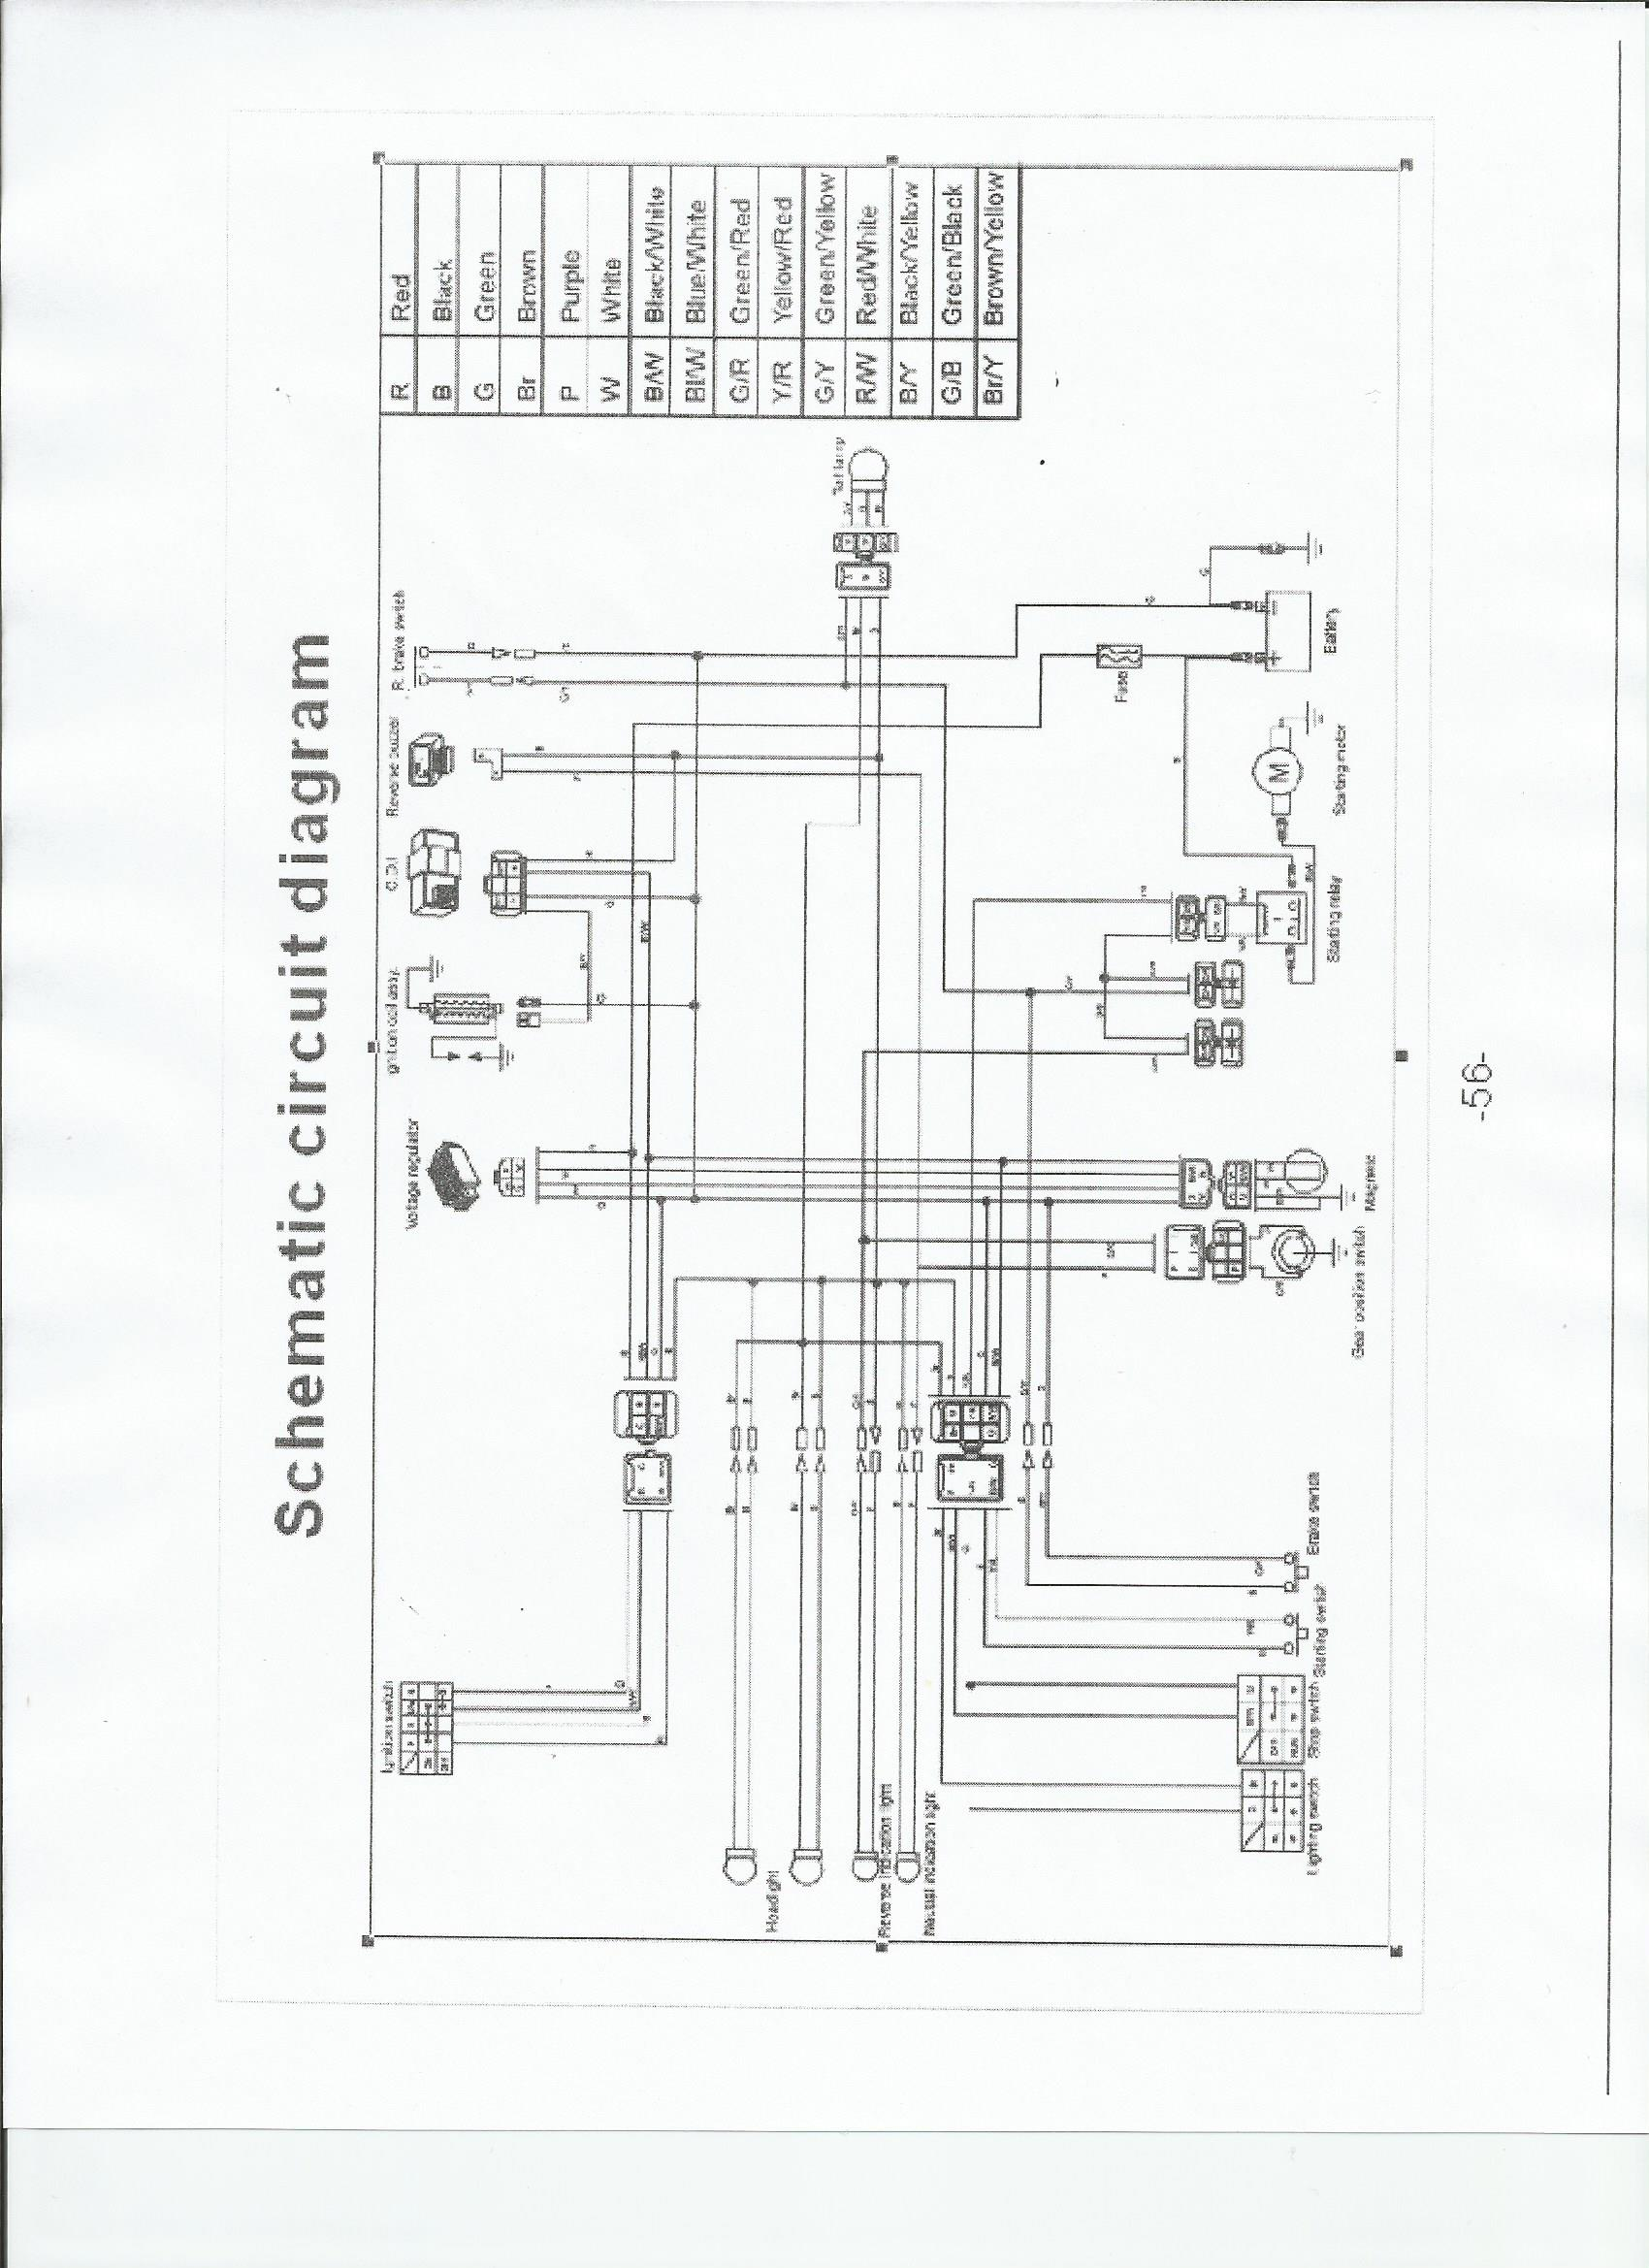 hight resolution of taotao mini and youth atv wiring schematic u2013 familygokarts supporttao tao wiring schematic jpg